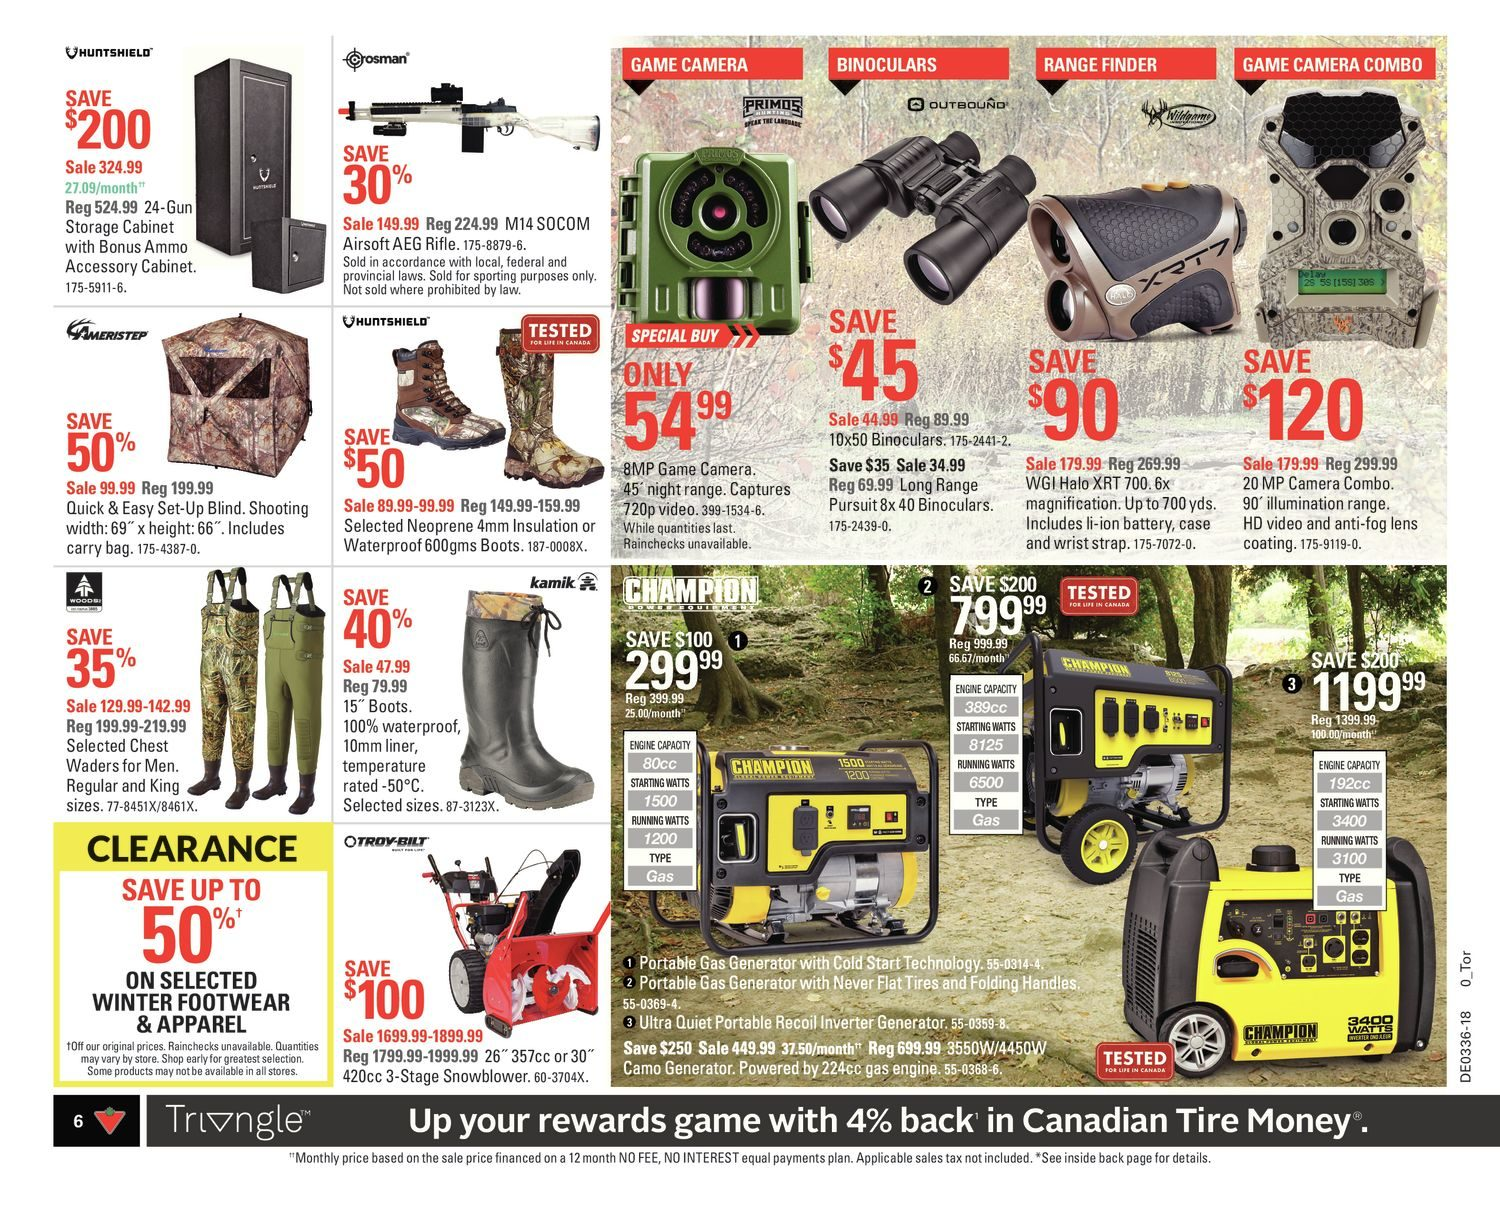 Canadian Tire Weekly Flyer Long Weekend Sale Aug 31 Bosch Carbide Wheel For Angle Grinder And Marble Cutter 066 Sep 6